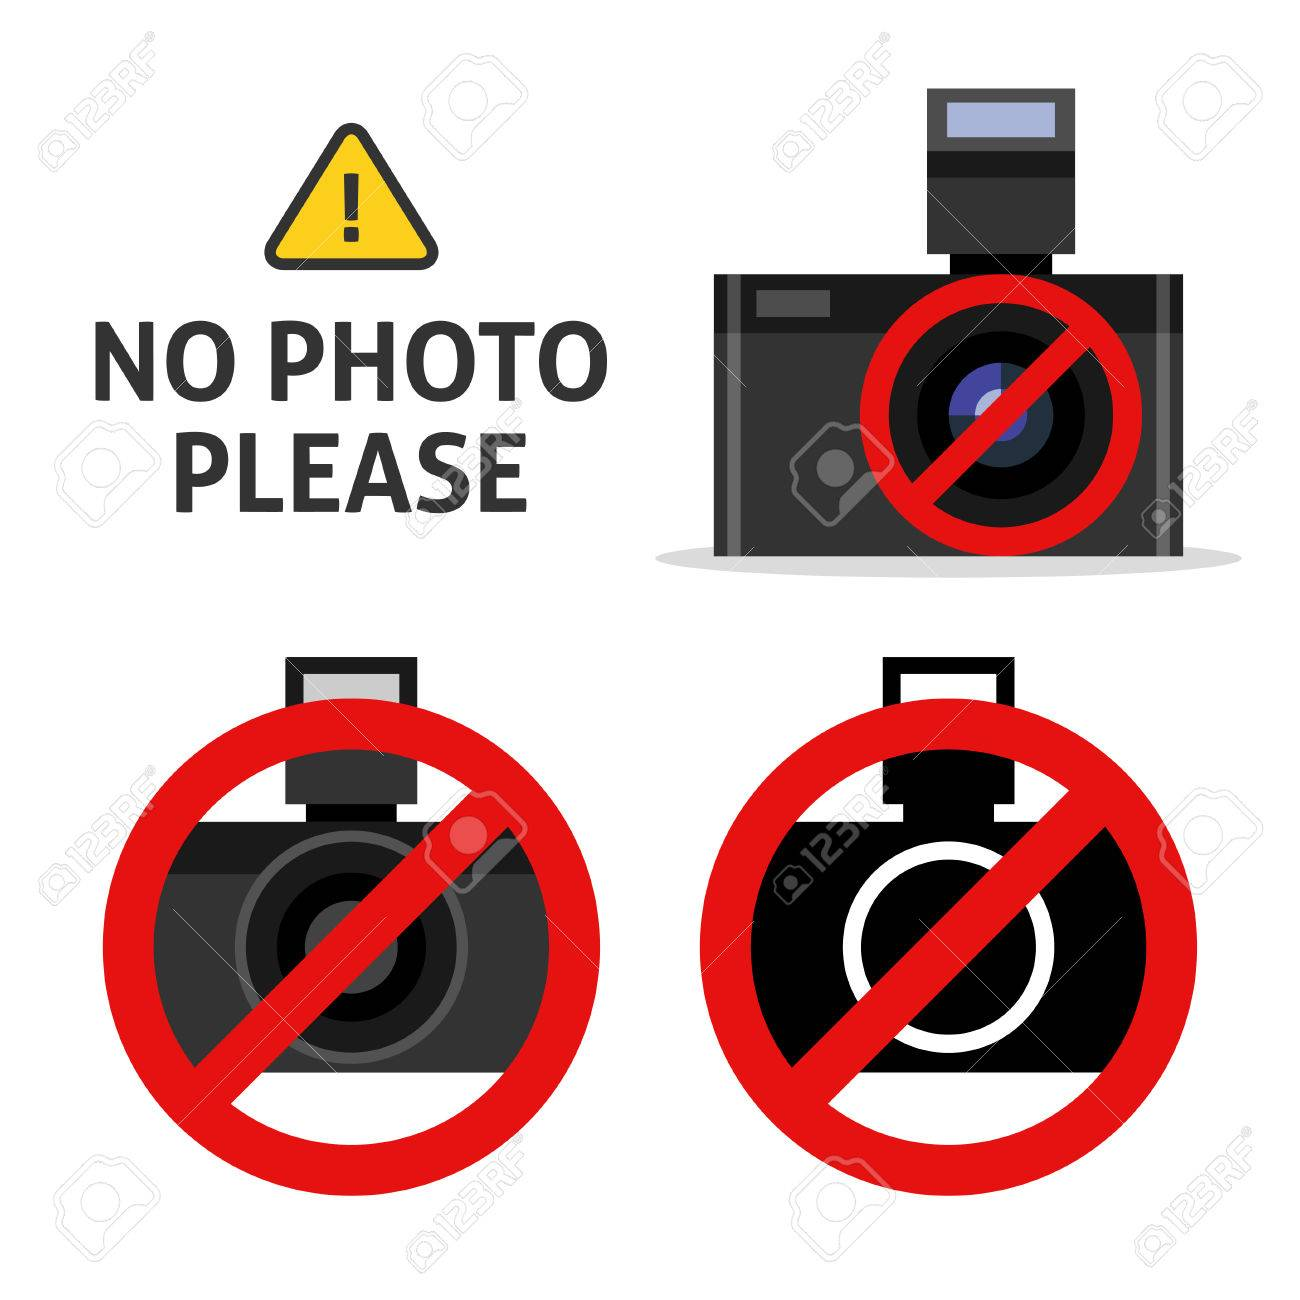 Prohibition No Photo Solid Icon. No Photograph Sign Vector Illustration  Isolated On White. Forbidden Camera Glyph Style Stock Vector - Illustration  of camera, prohibition: 140653316